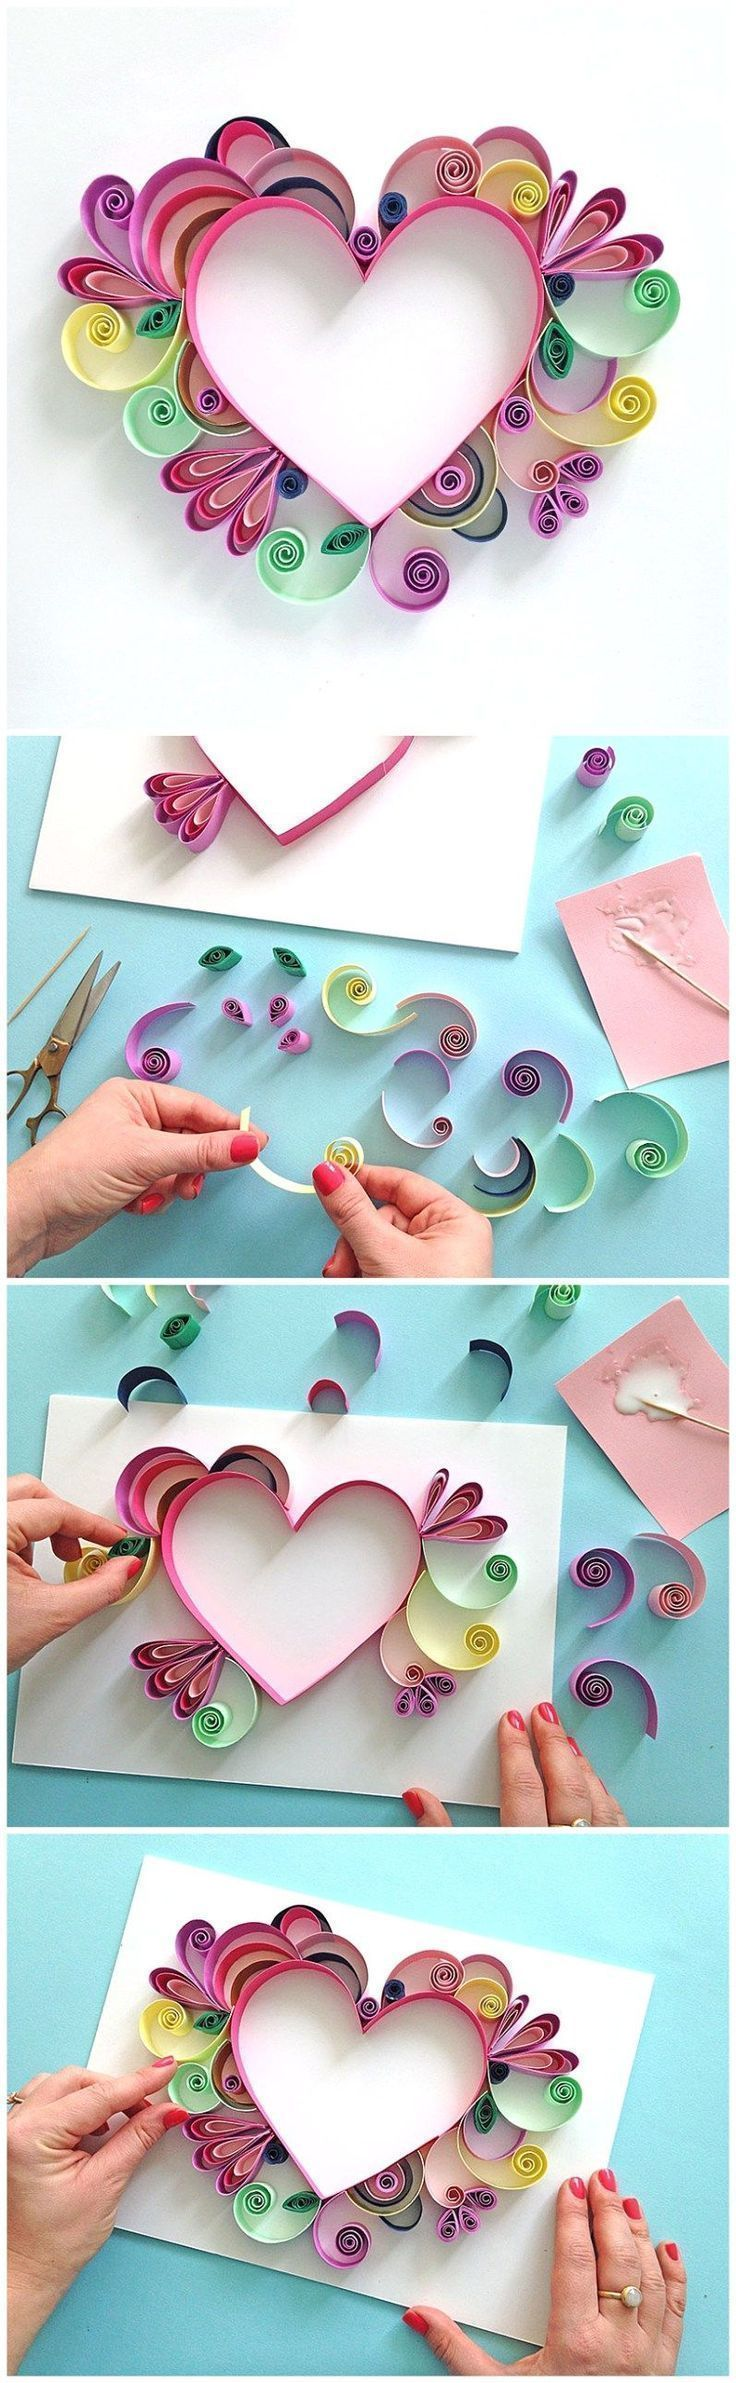 The best do it yourself gifts fun clever and unique diy craft the best do it yourself gifts fun clever and unique diy craft projects and ideas for christmas birthday school gift ideas pinterest solutioingenieria Images